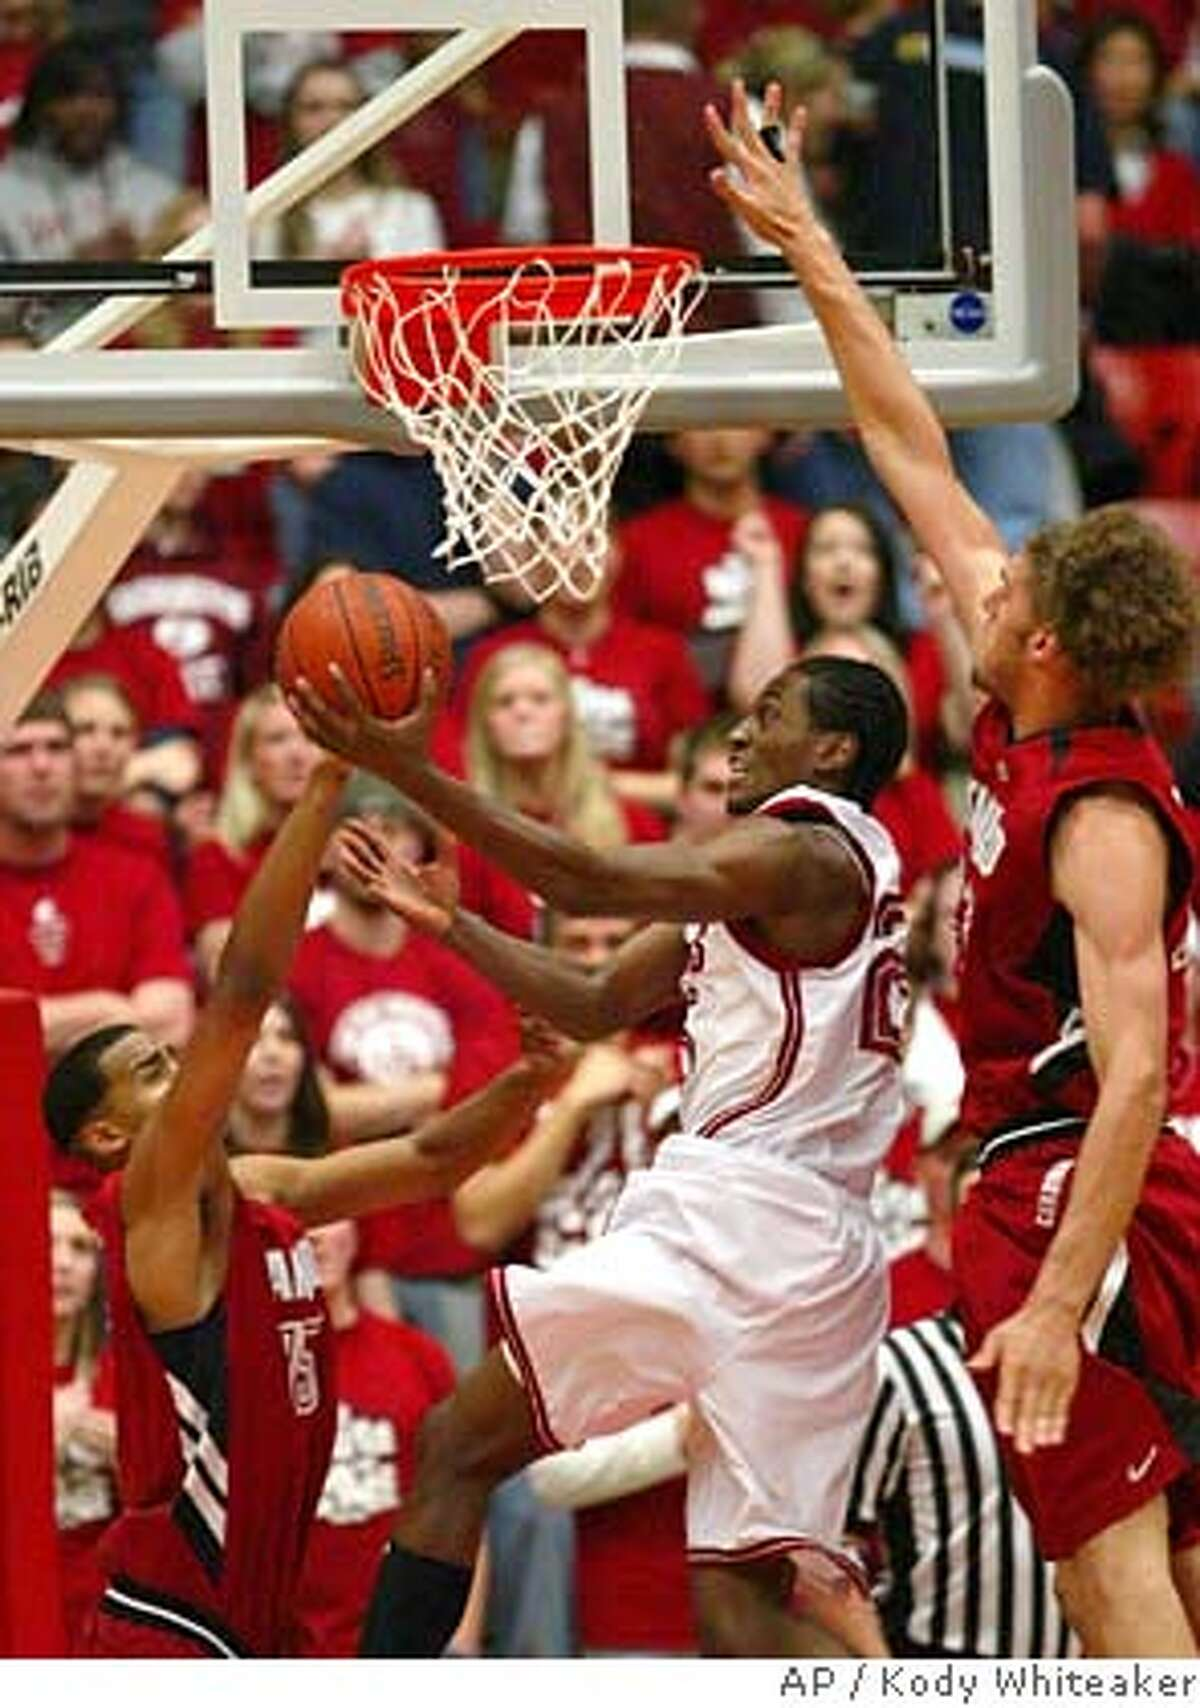 Washington State guard Kyle Weaver, center, attempts a lay-up against Stanford defenders, Robin Lopez, right, and Peter Prowitt in the first half on Thursday, Feb. 8, 2007, in a college basketball game in Pullman, Wash.(AP Photo/Kody Whiteaker)